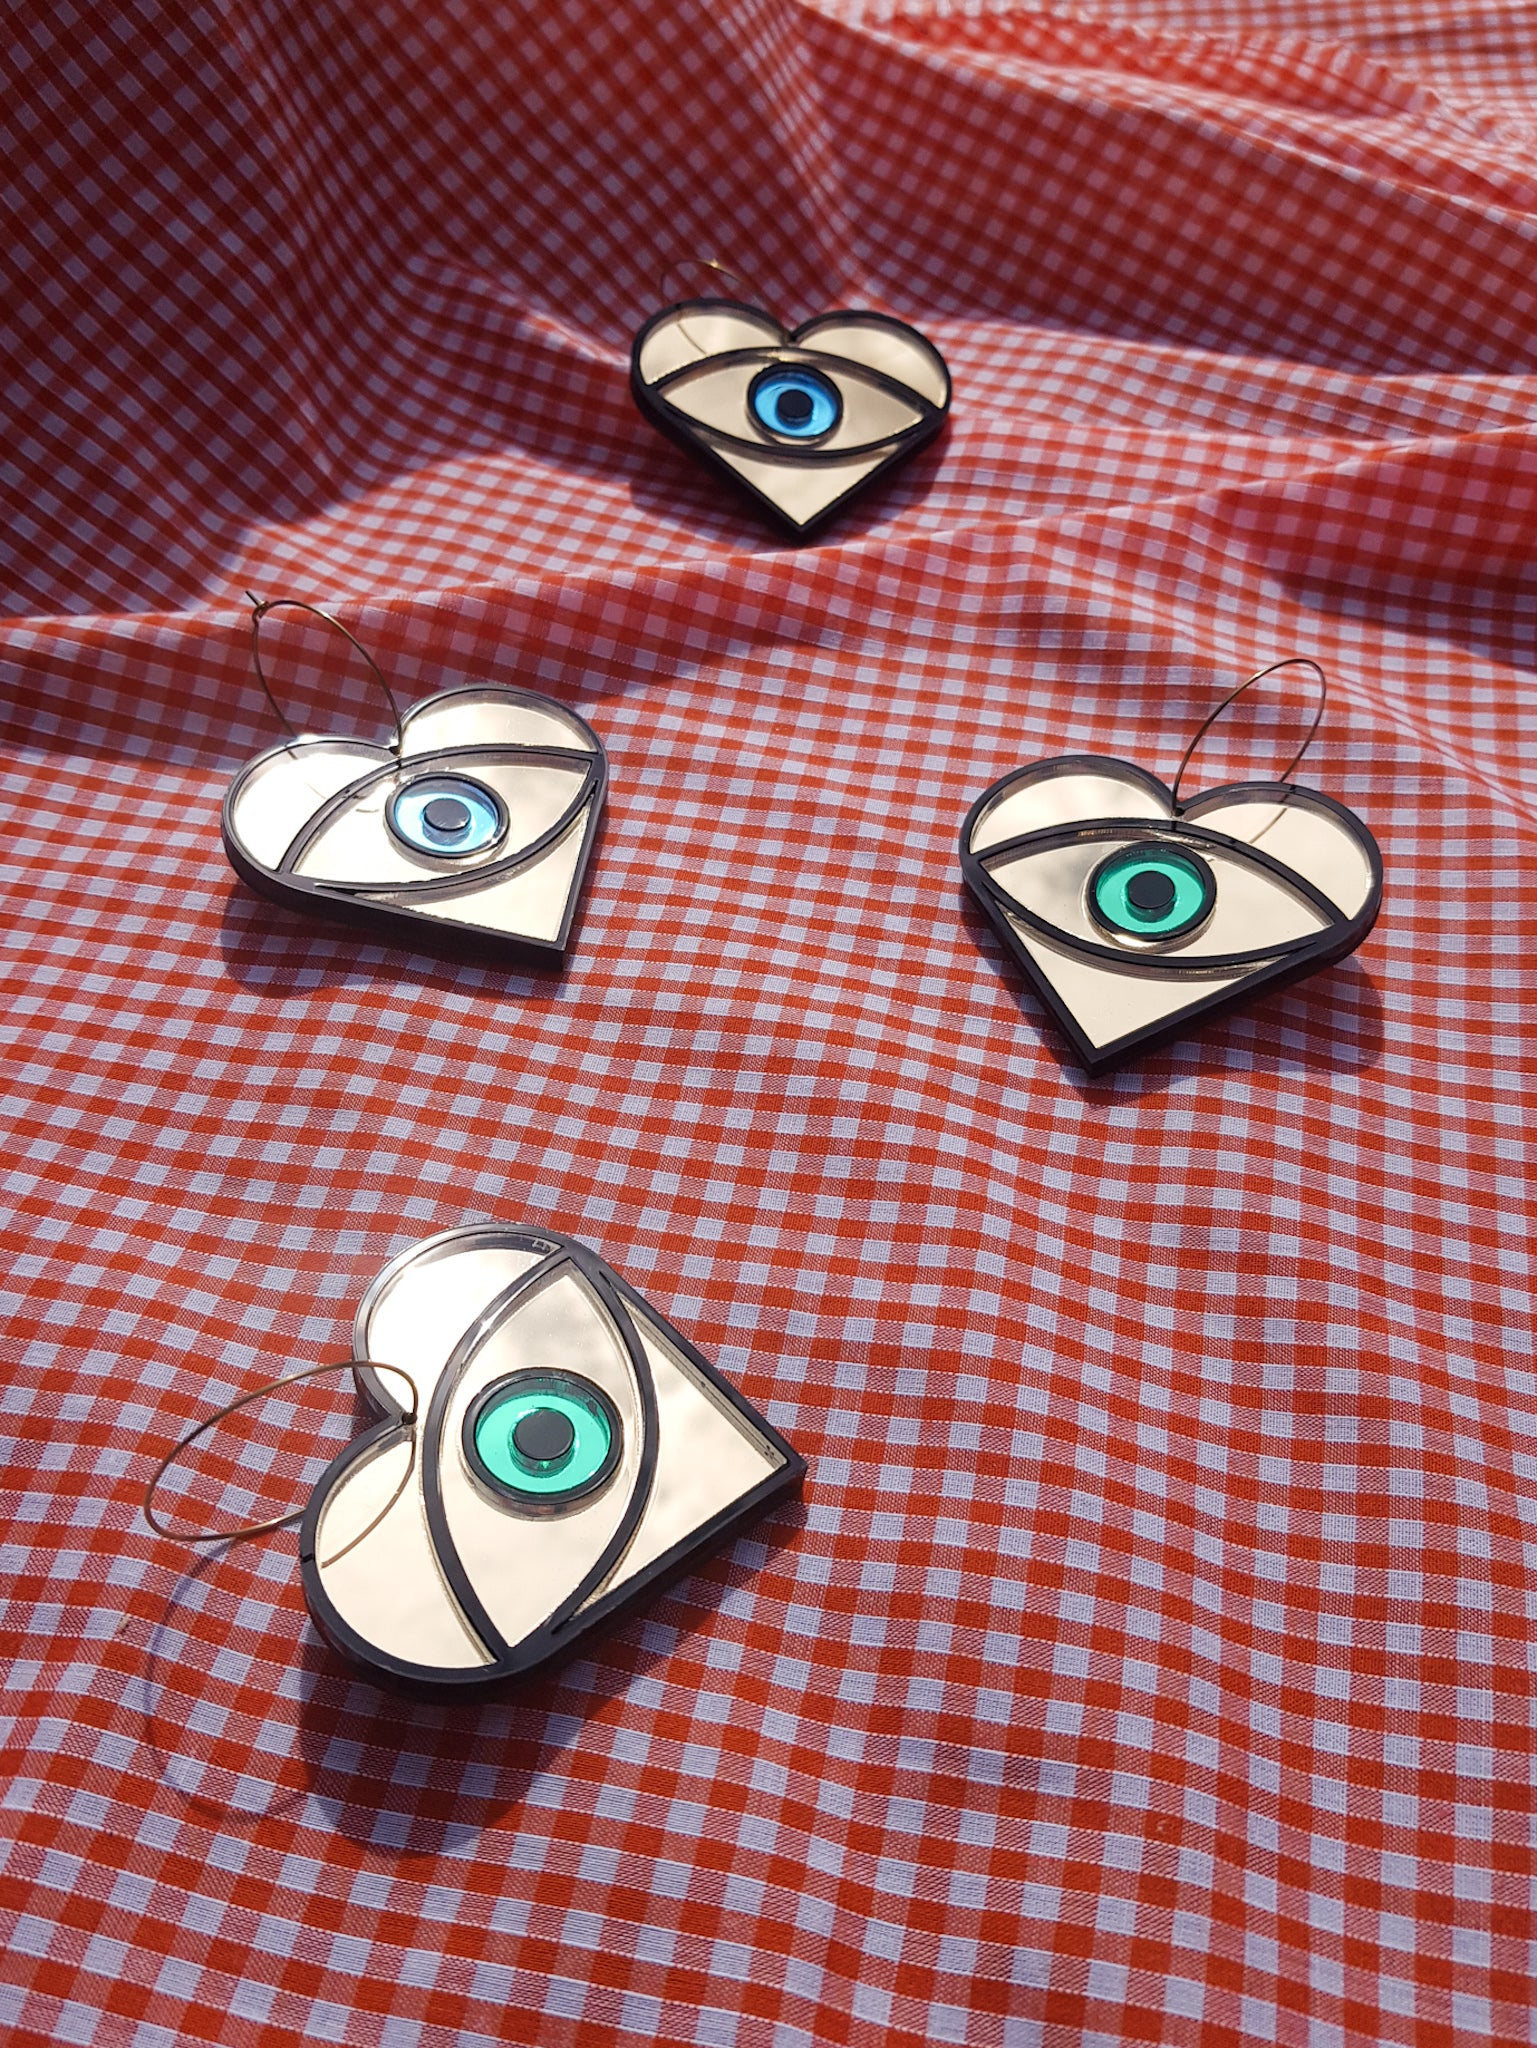 Flaming eye earrings